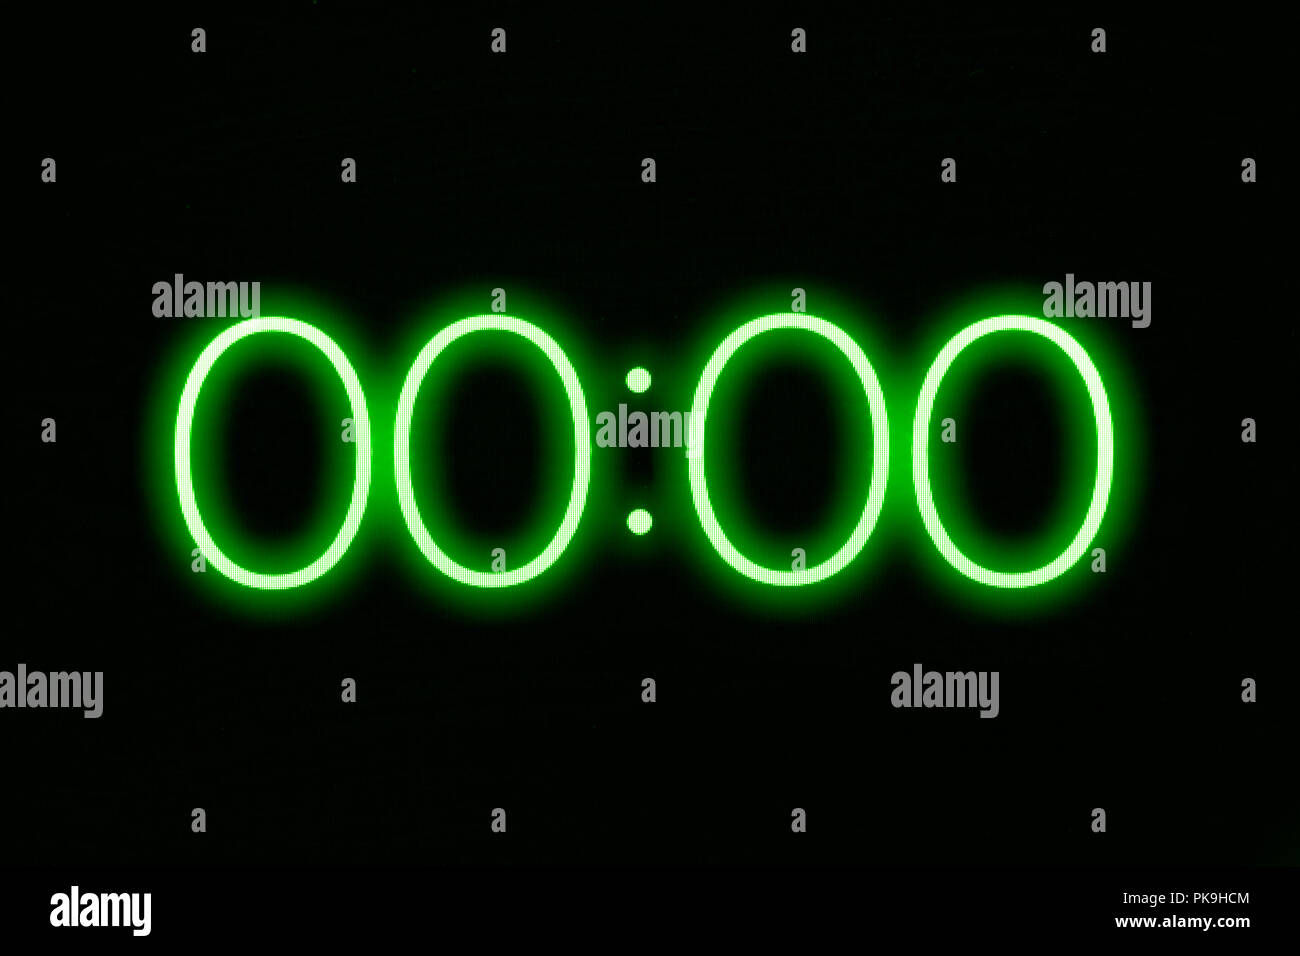 Digital clock timer stopwatch display showing 0 zero seconds remaining. Emergency, urgency, out of time concept. - Stock Image